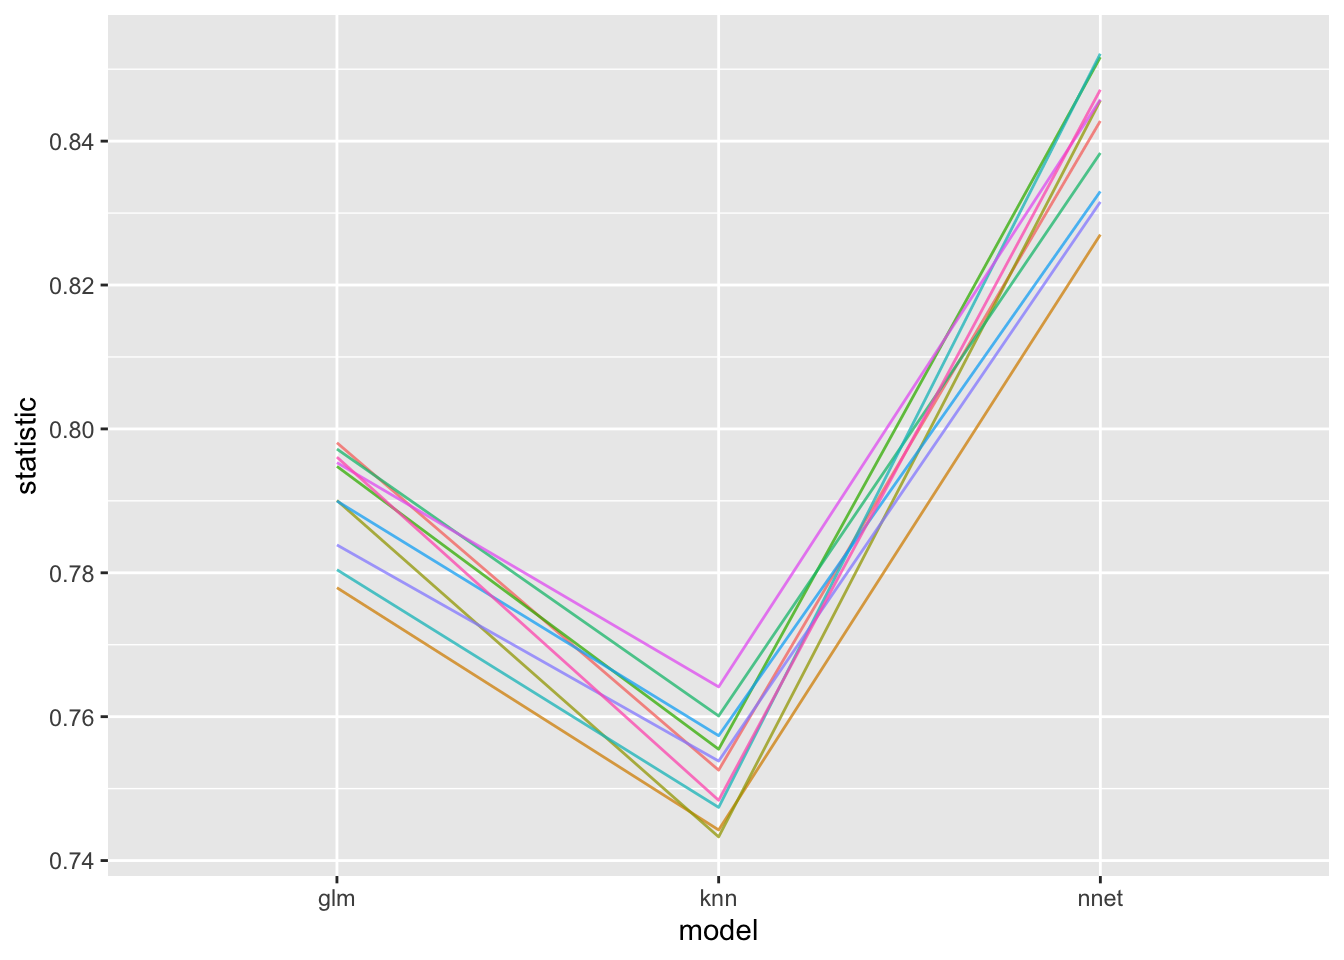 tidyposterior's Bayesian Approach to Model Comparison